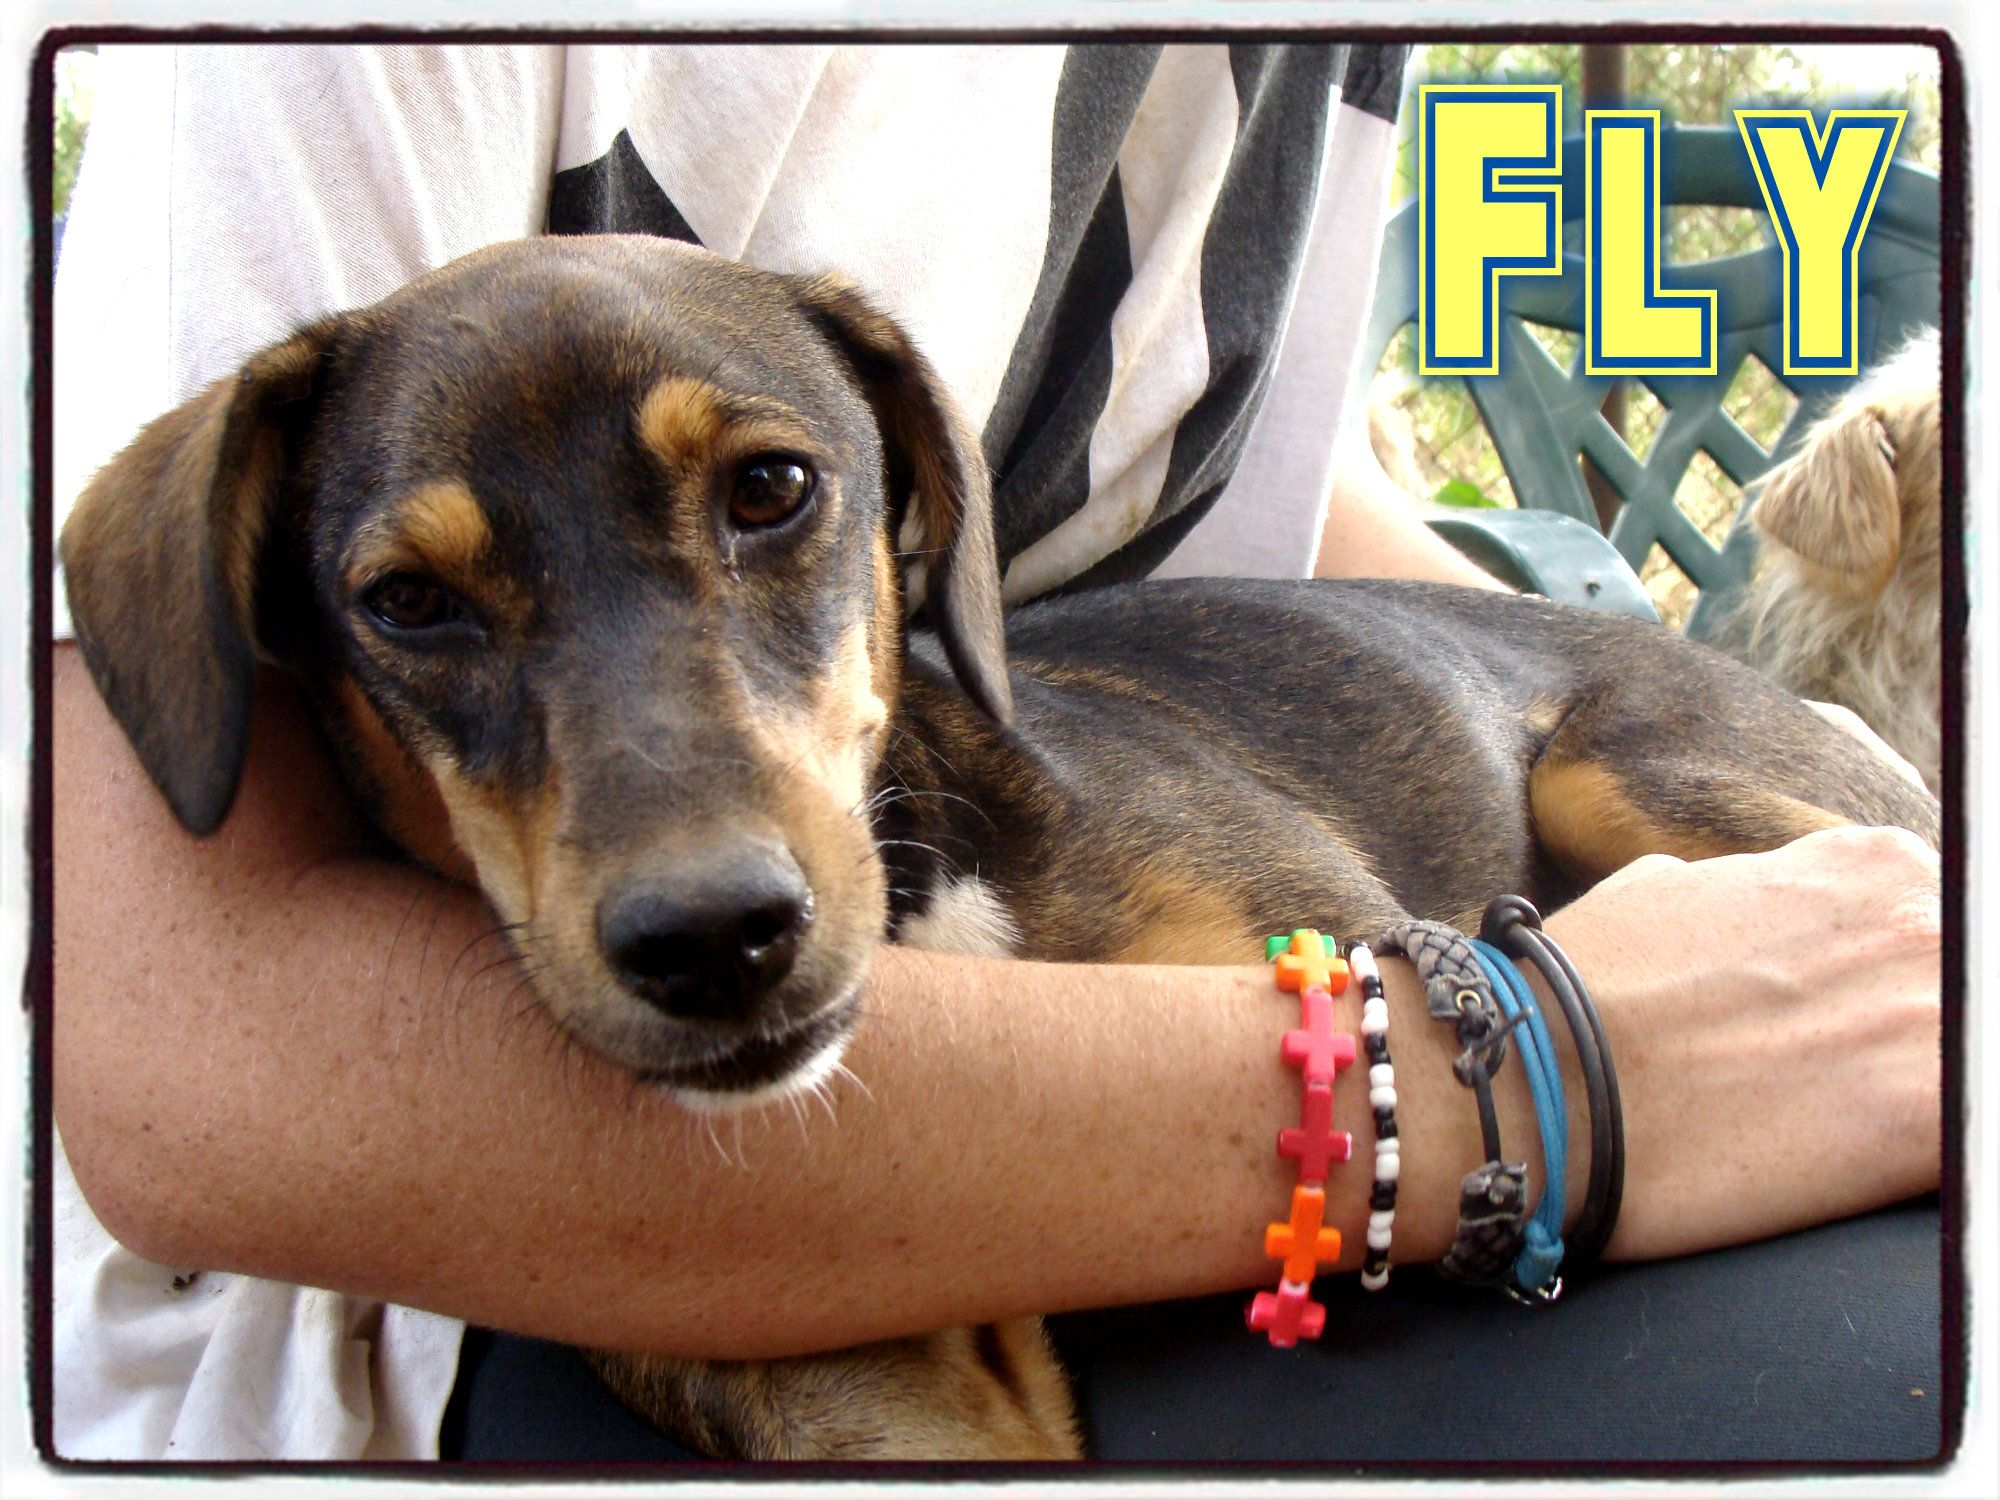 #Fly arrived to our Refuge flying. She was through the fence of our shelter. We ...